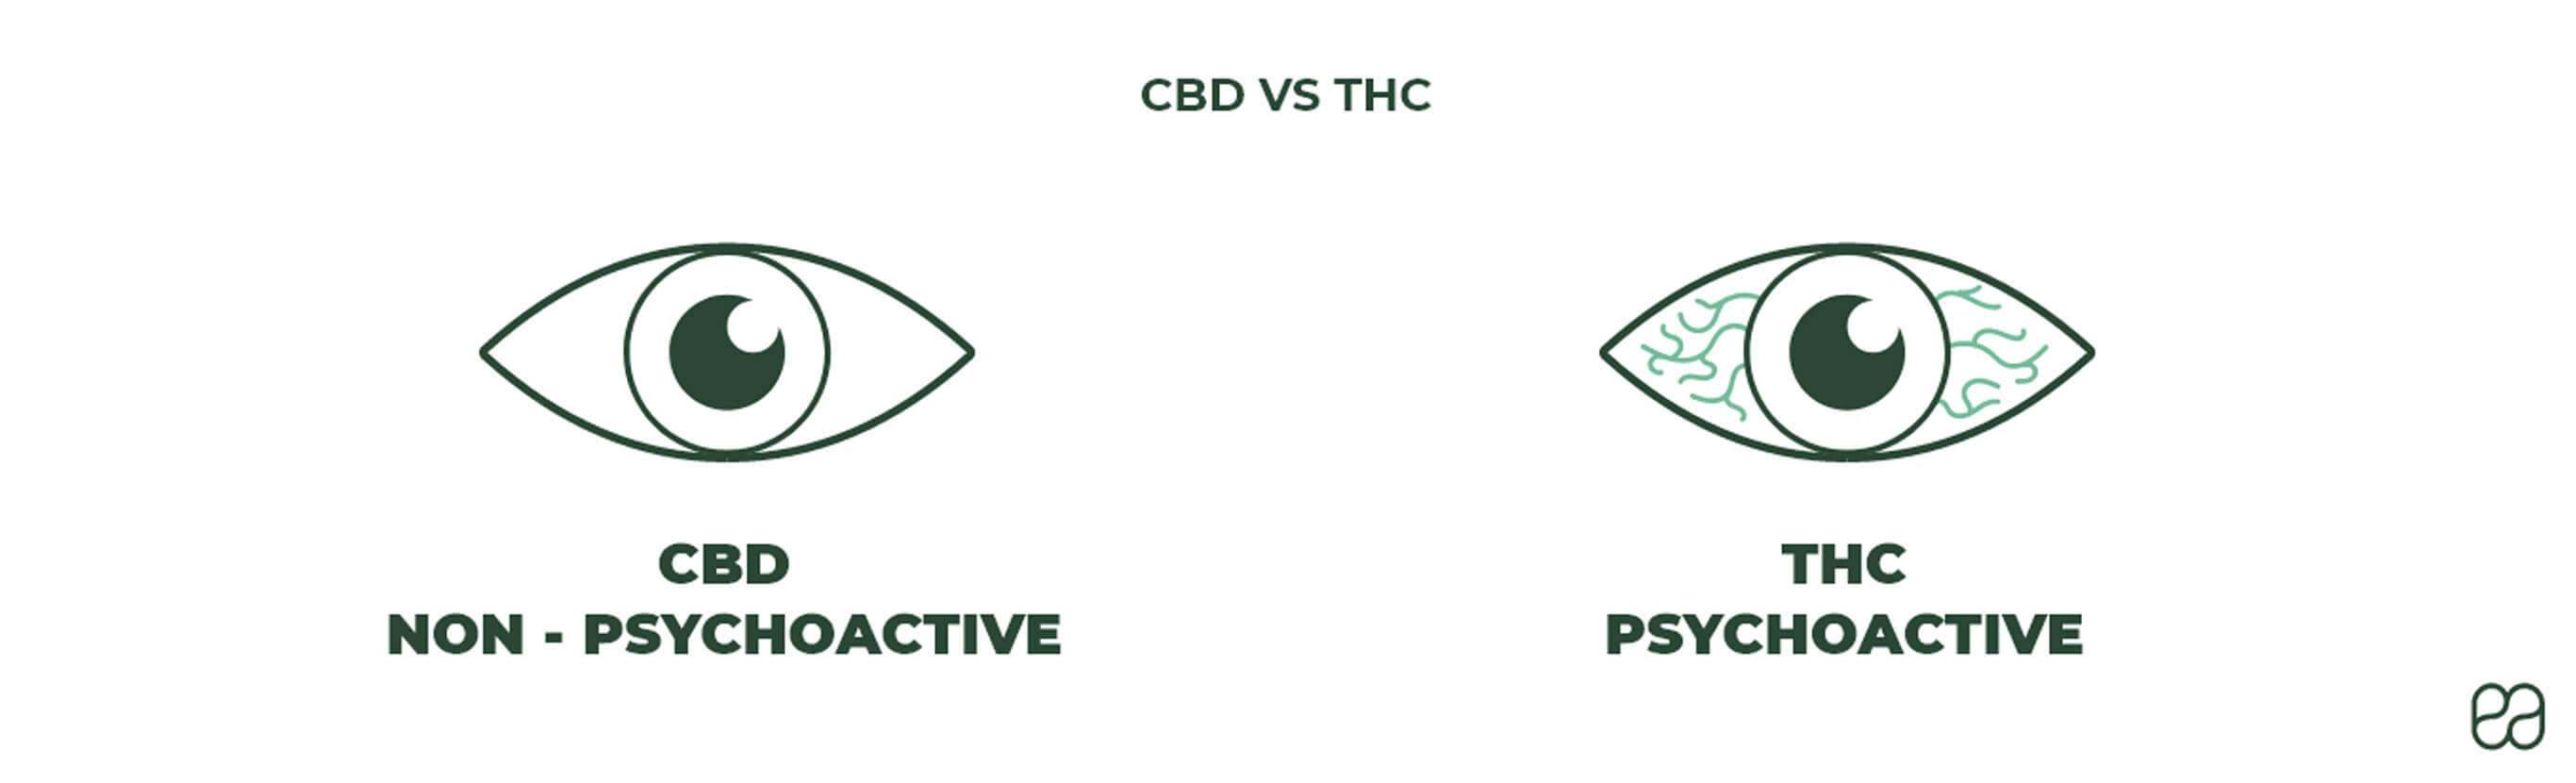 THC is psychoactive and CBD is non-psychoactive. THC will make you high, while CBD is known for its calming effects.